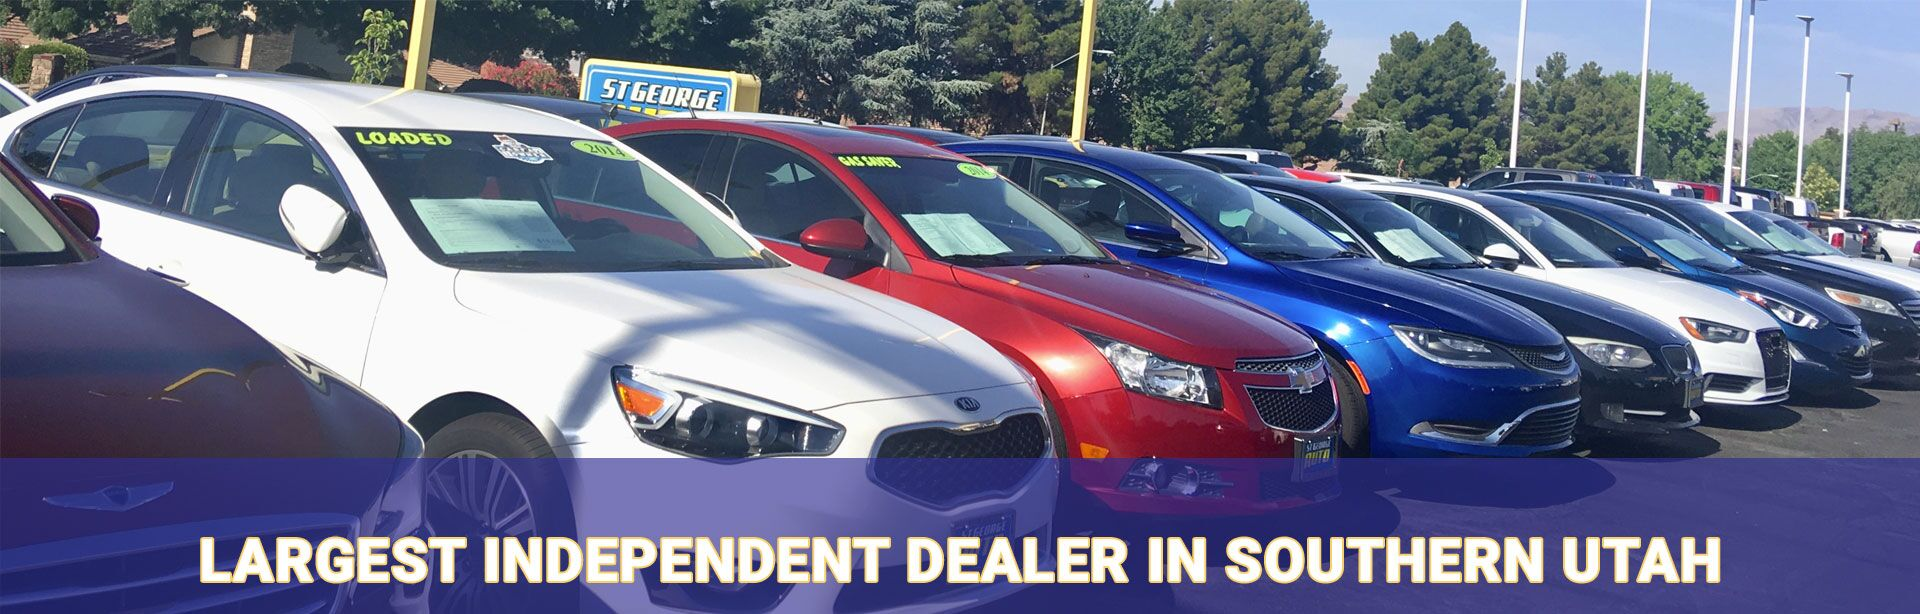 used cars, trucks, and SUVs inventory